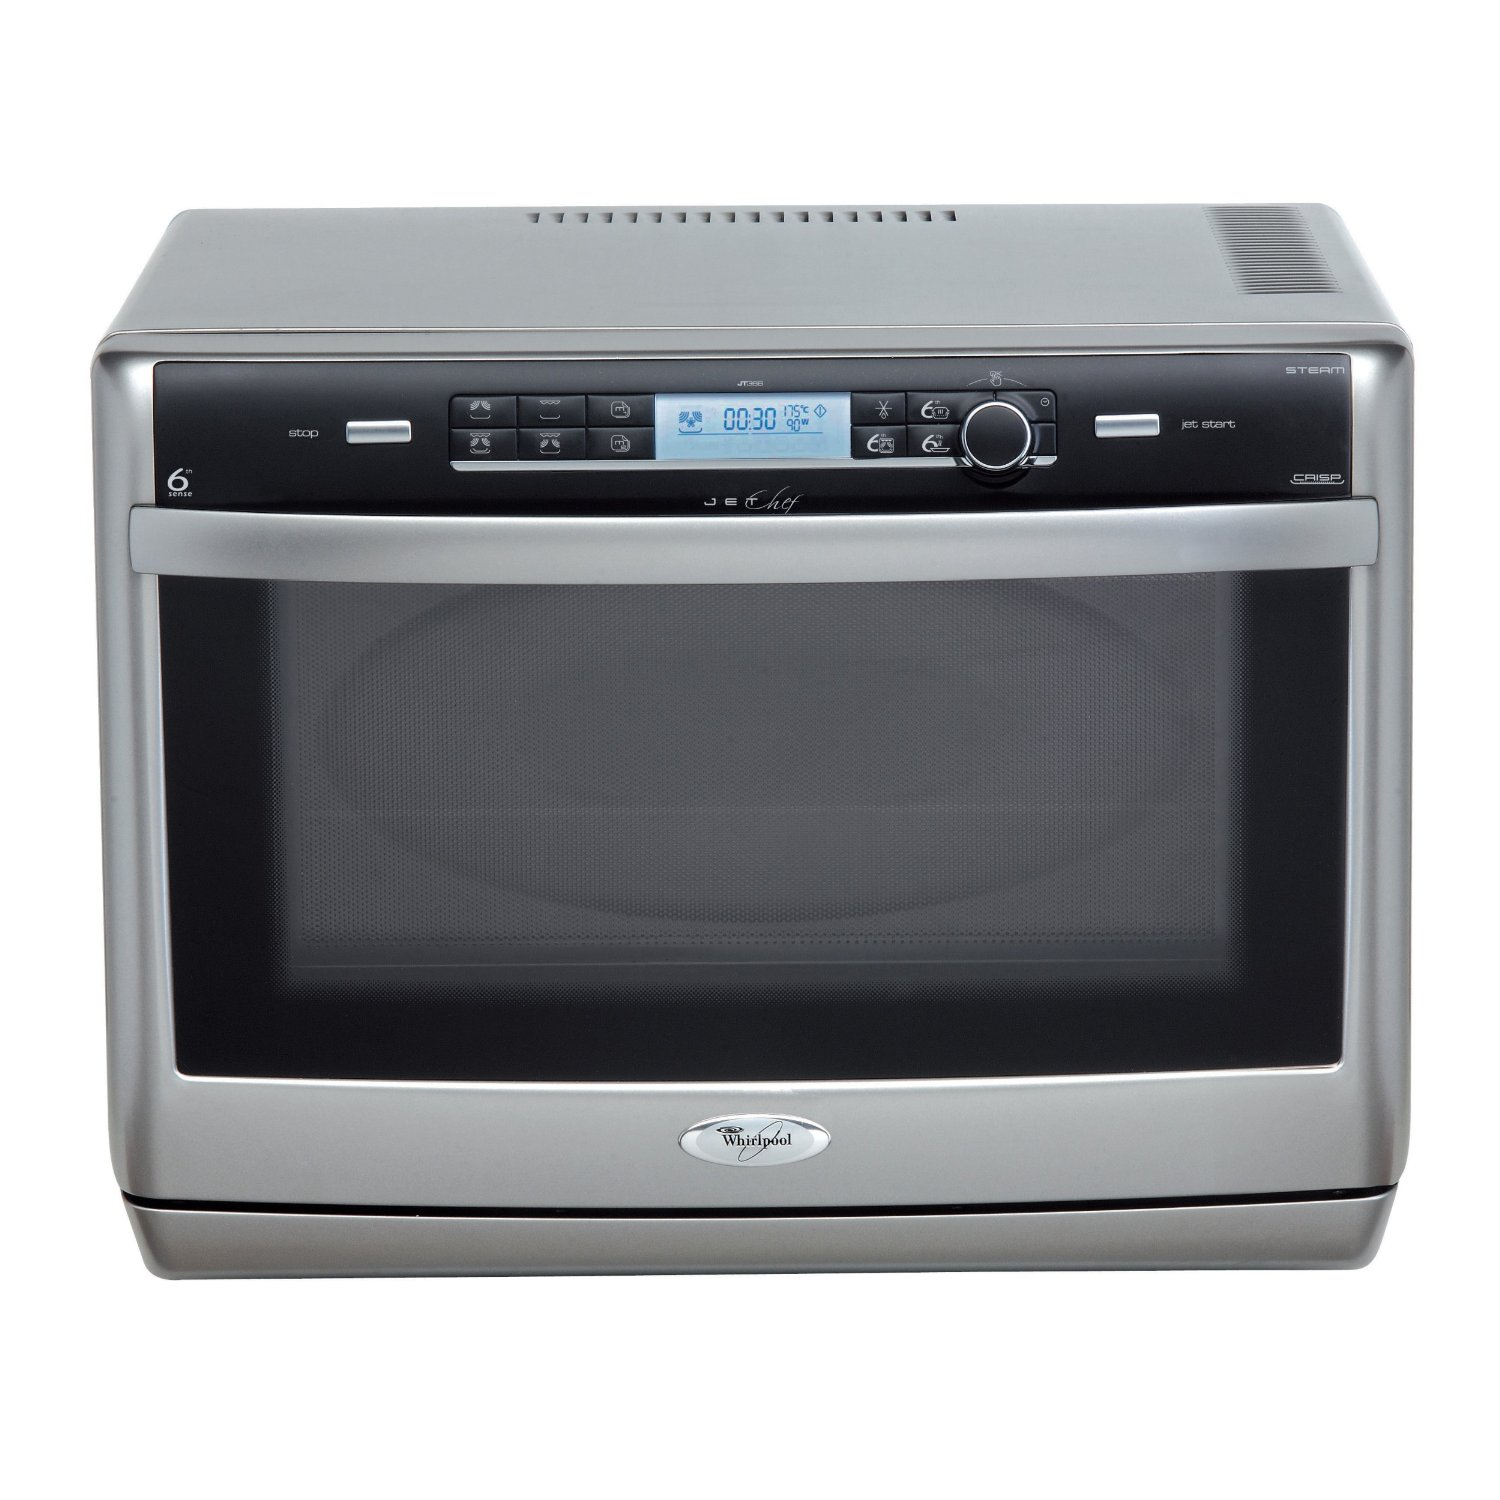 Whirlpool Jet Chef 31l 1000w Family Microwave Review